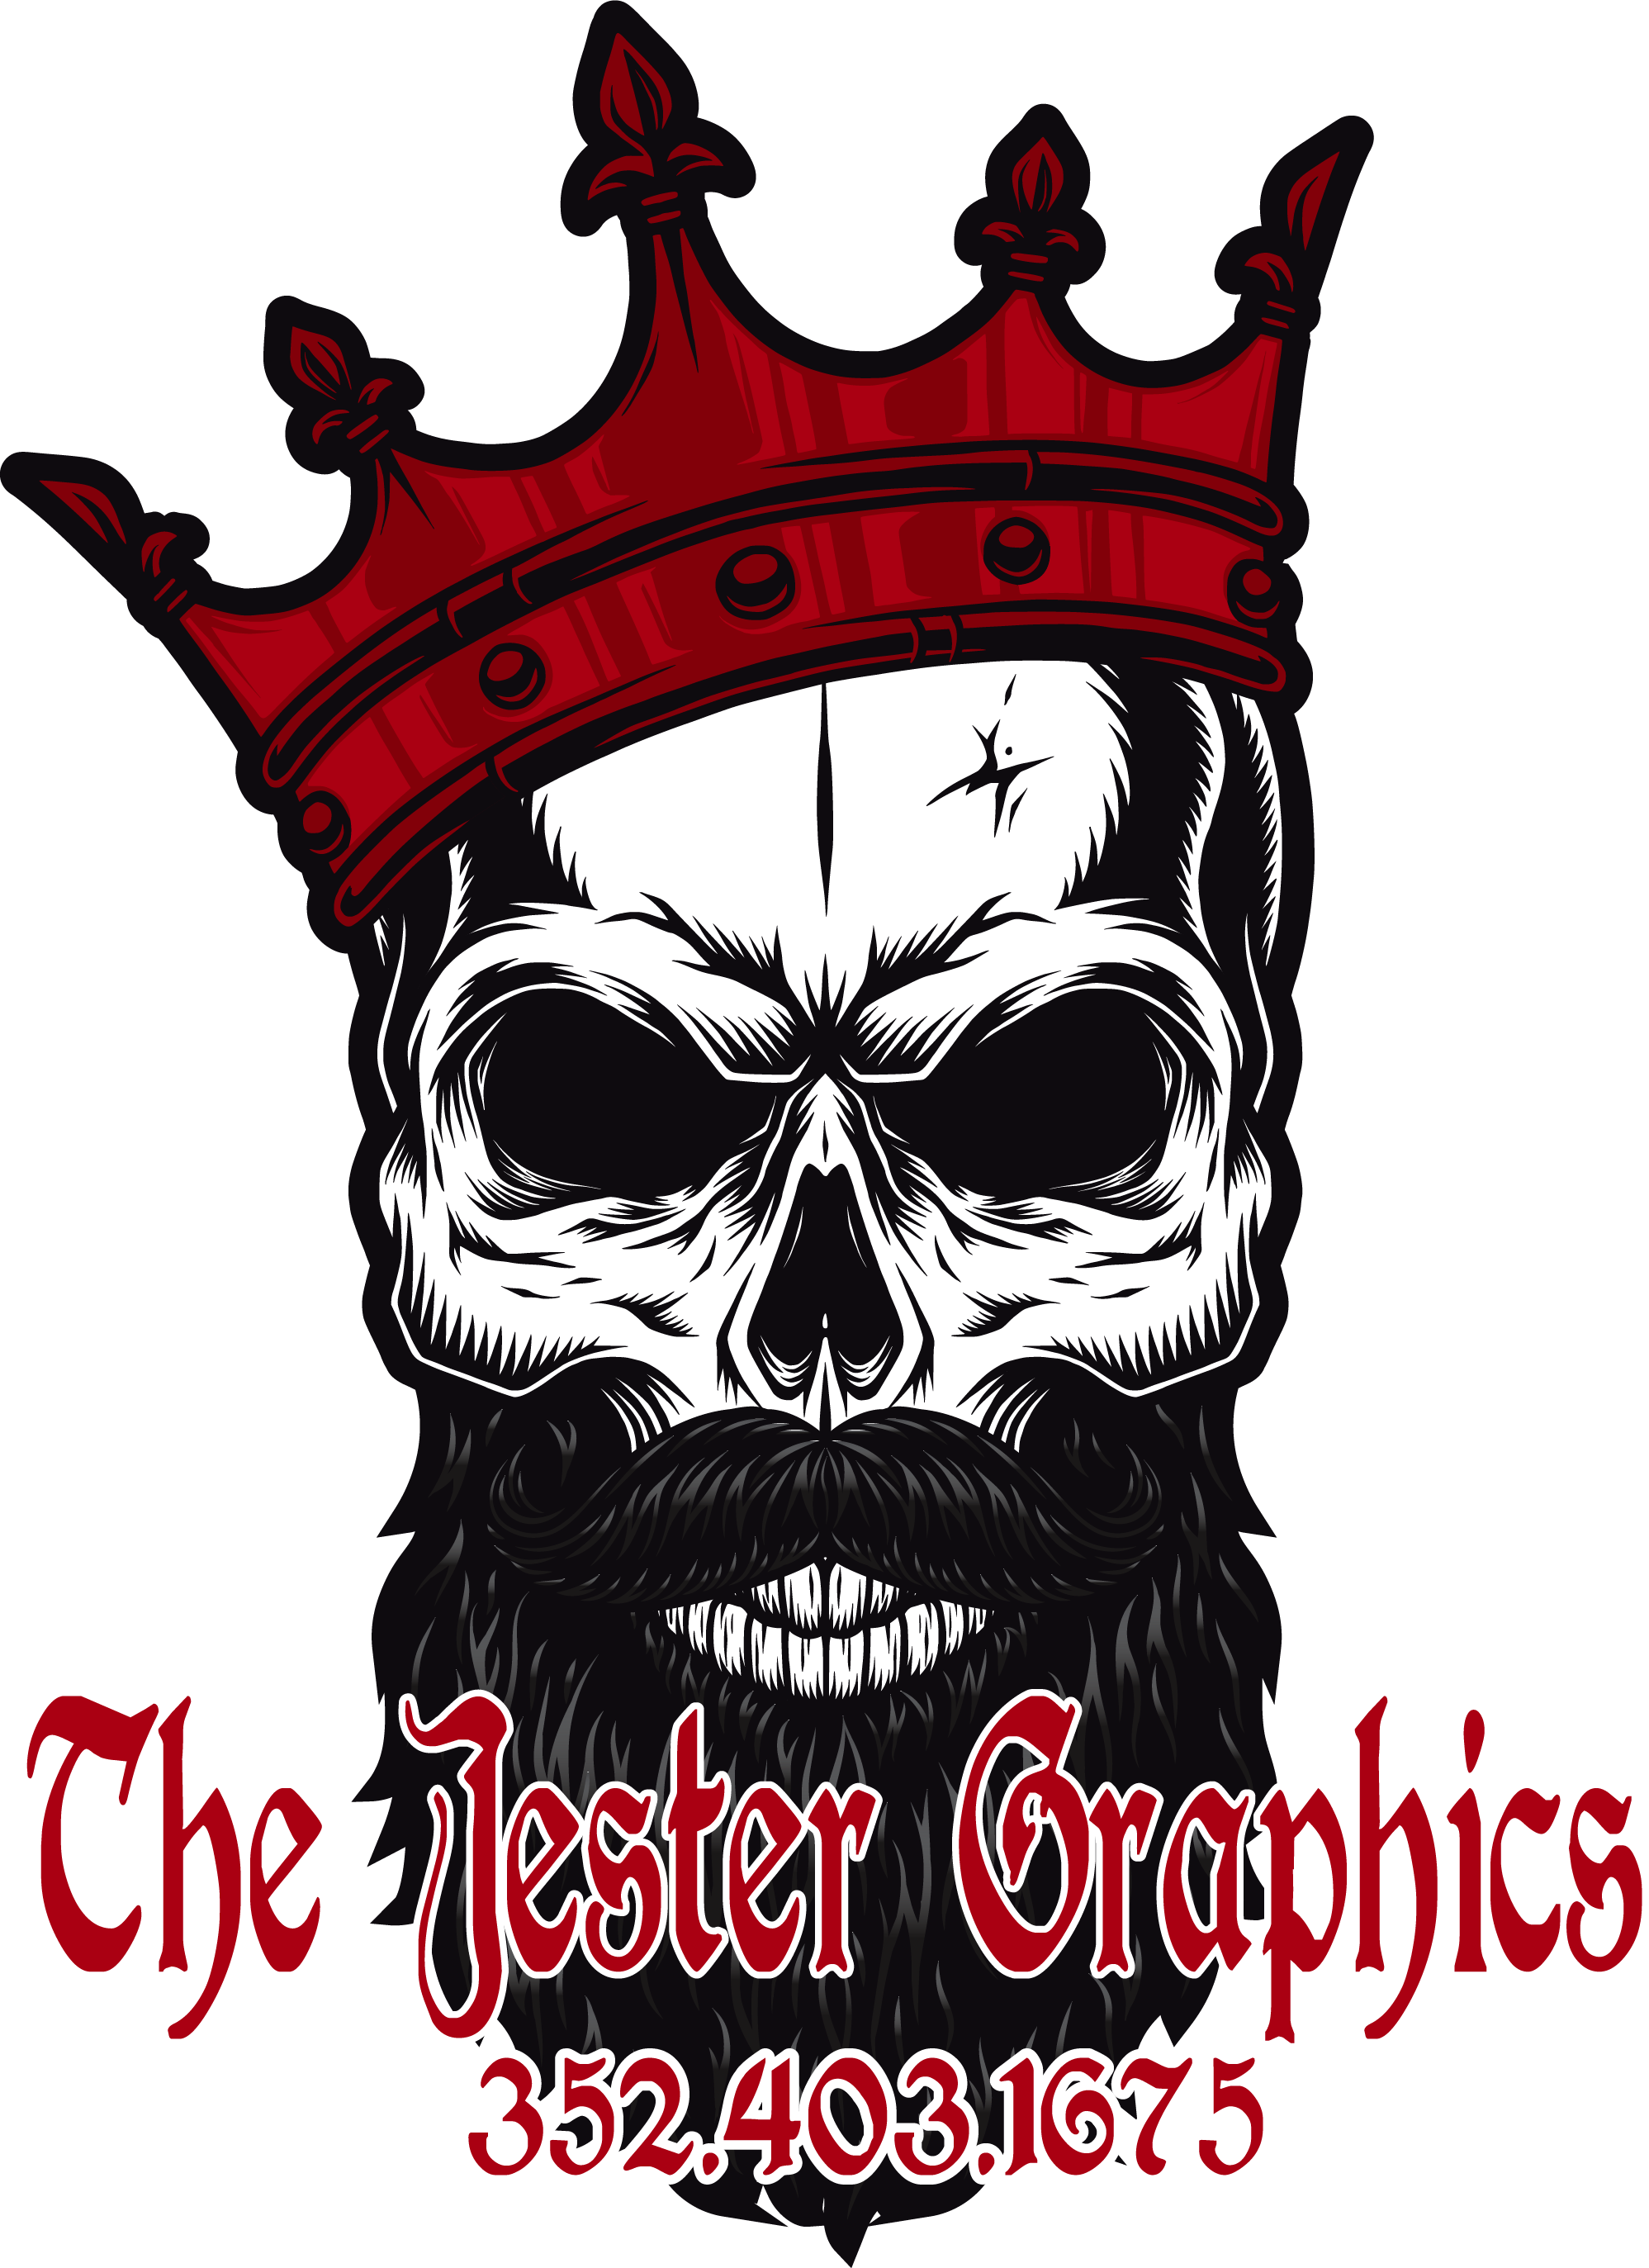 The Jester Graphics